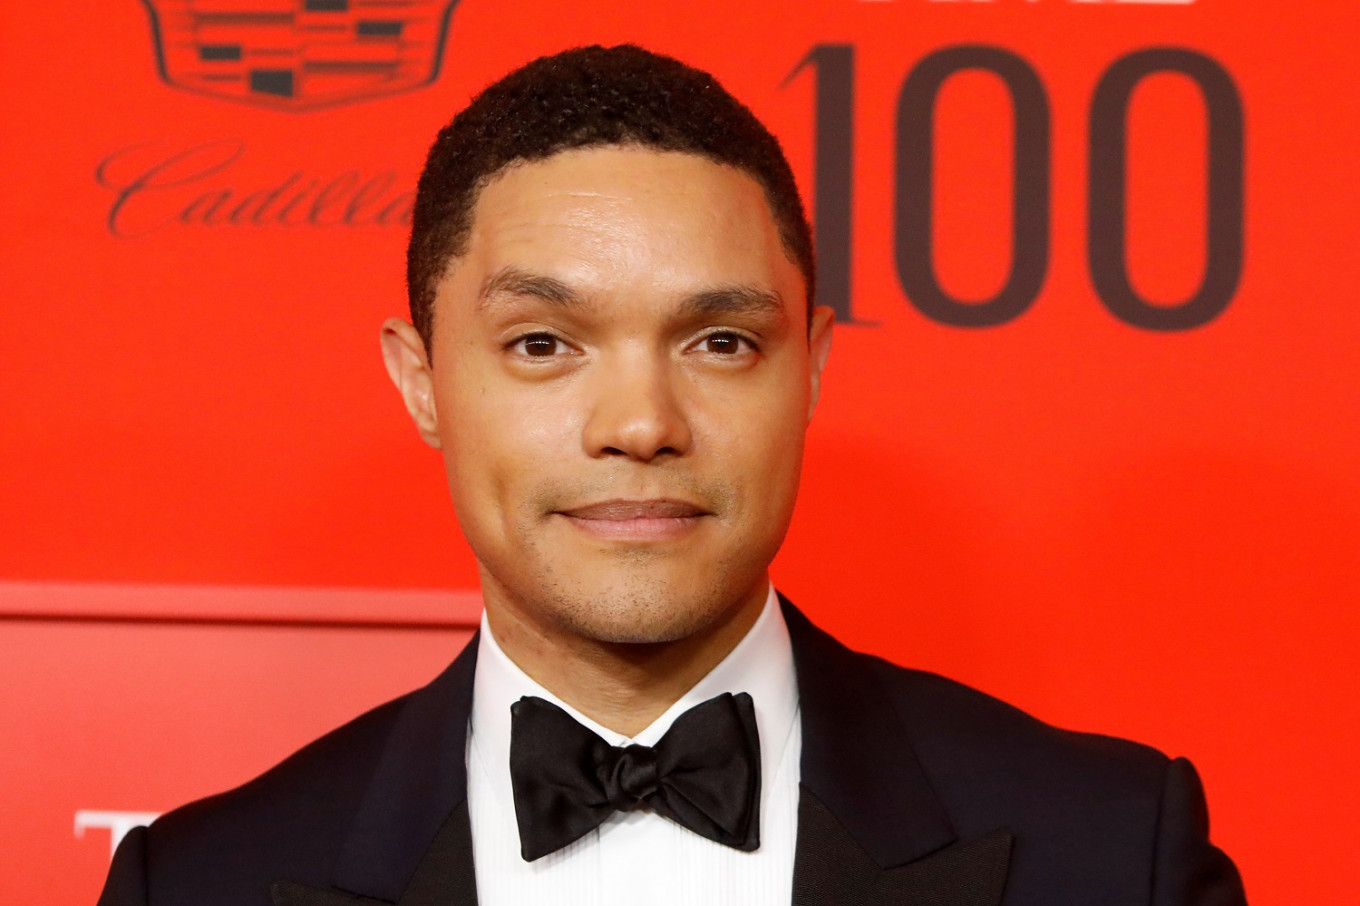 South African comedian Trevor Noah's first stand-up show in Singapore in August